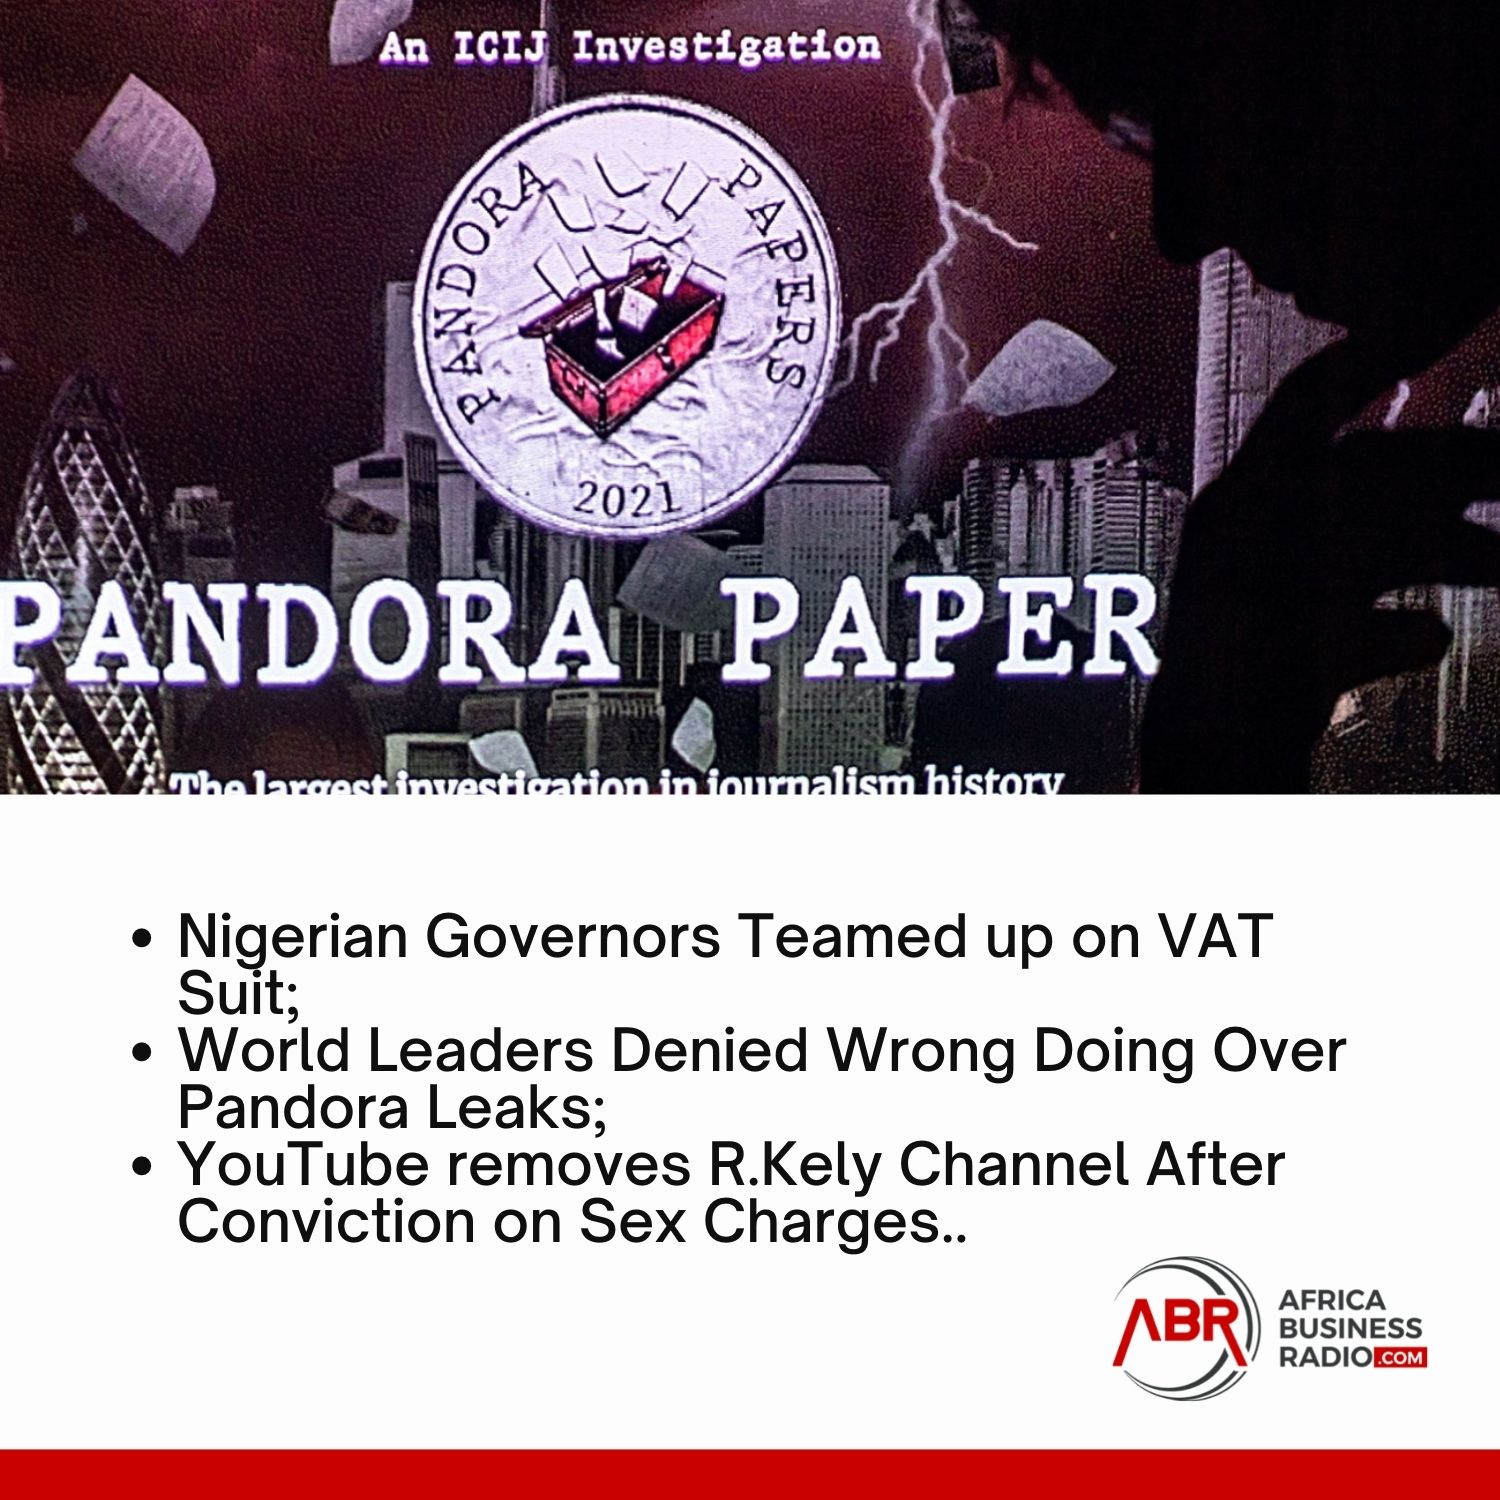 Nigerian Governors Teamed up on VAT Suit; World Leaders Denied Wrong Doing Over Pandora Leaks; YouTube Removes R.Kelly Channel After Conviction on Sex Charges..